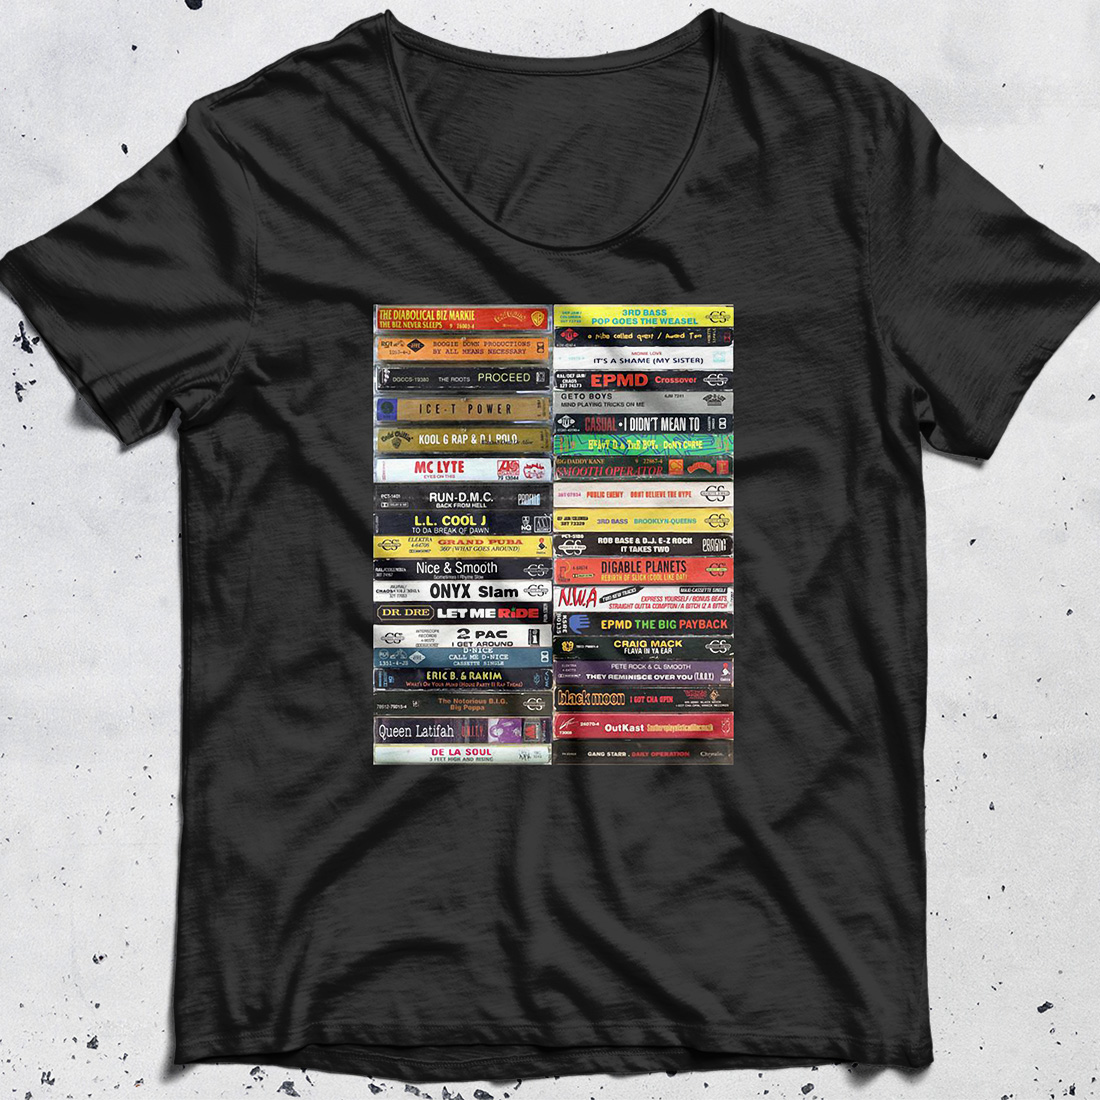 Old school hip hop cassette tape shirt